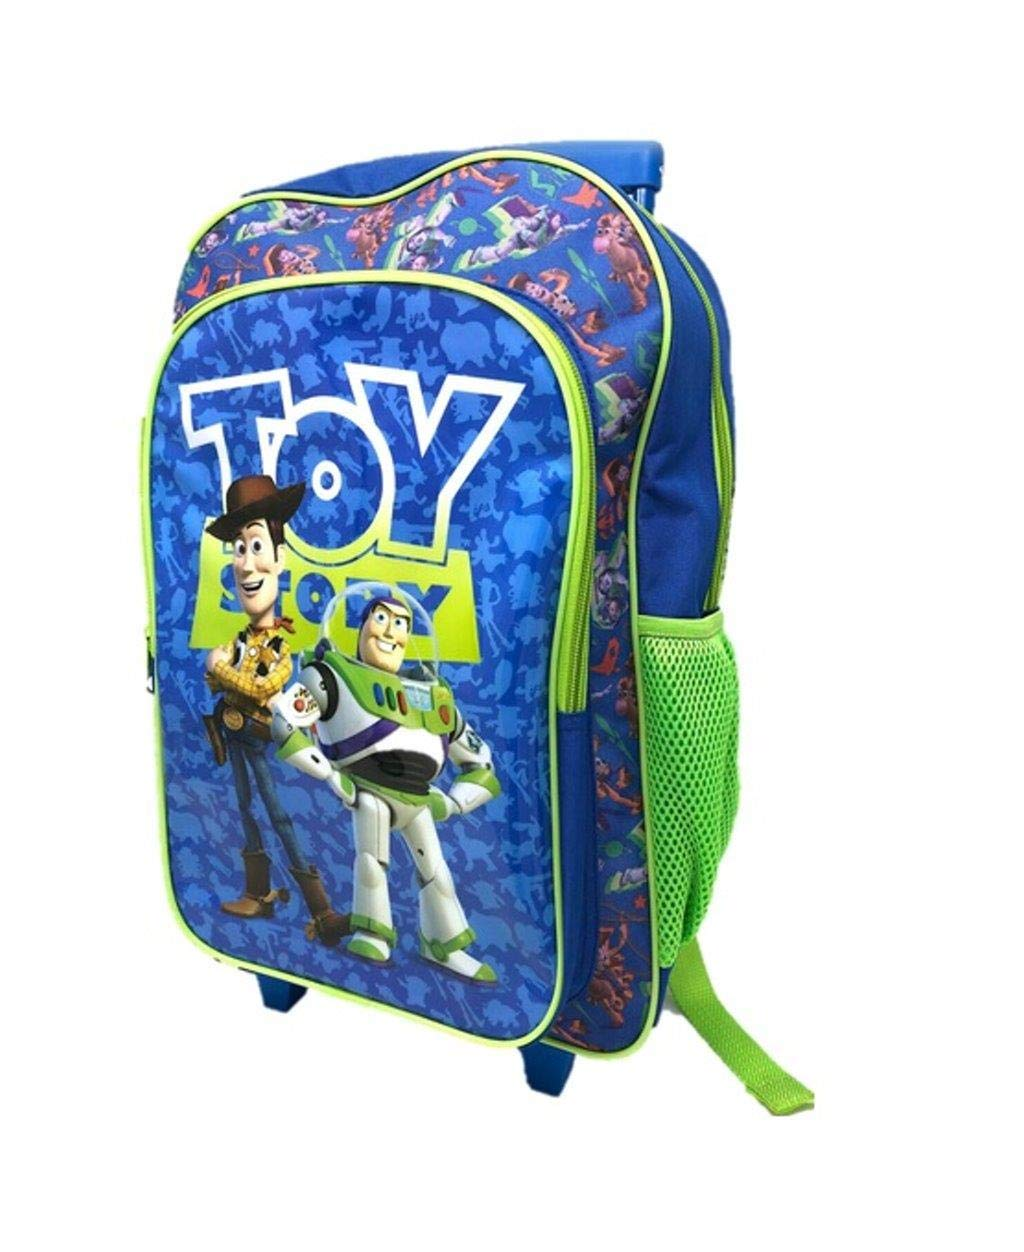 Toy Story 4 Children's Character Luggage Deluxe Wheeled Trolley Backpack Suitcase Cabin Bag School